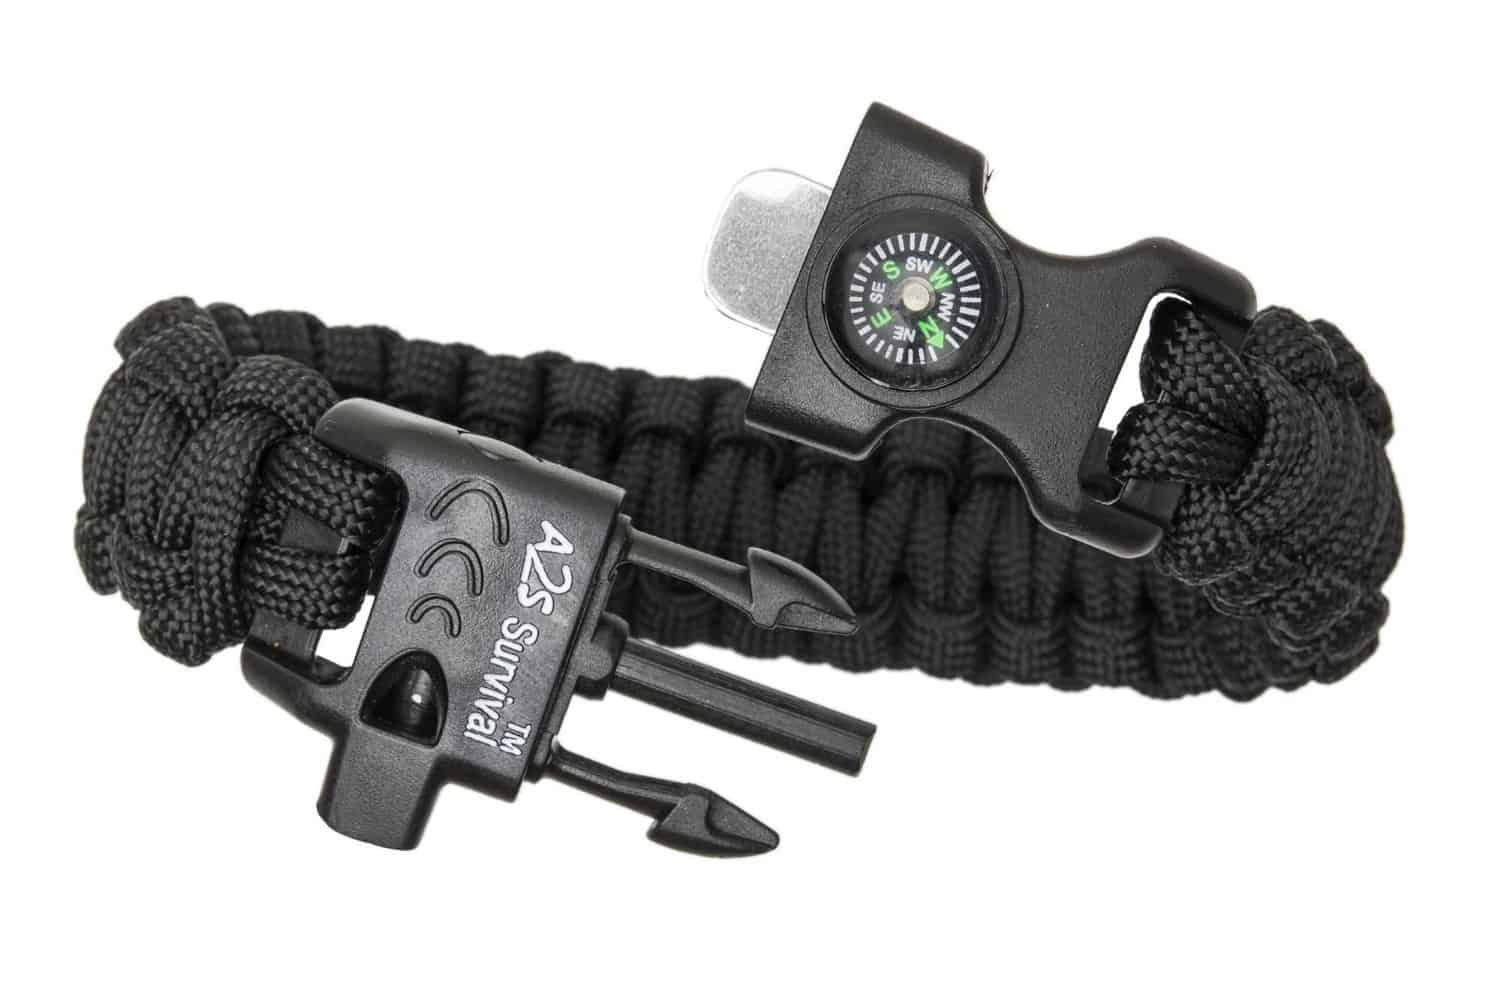 Paracord Bracelet 5-IN-1 Survival Tool